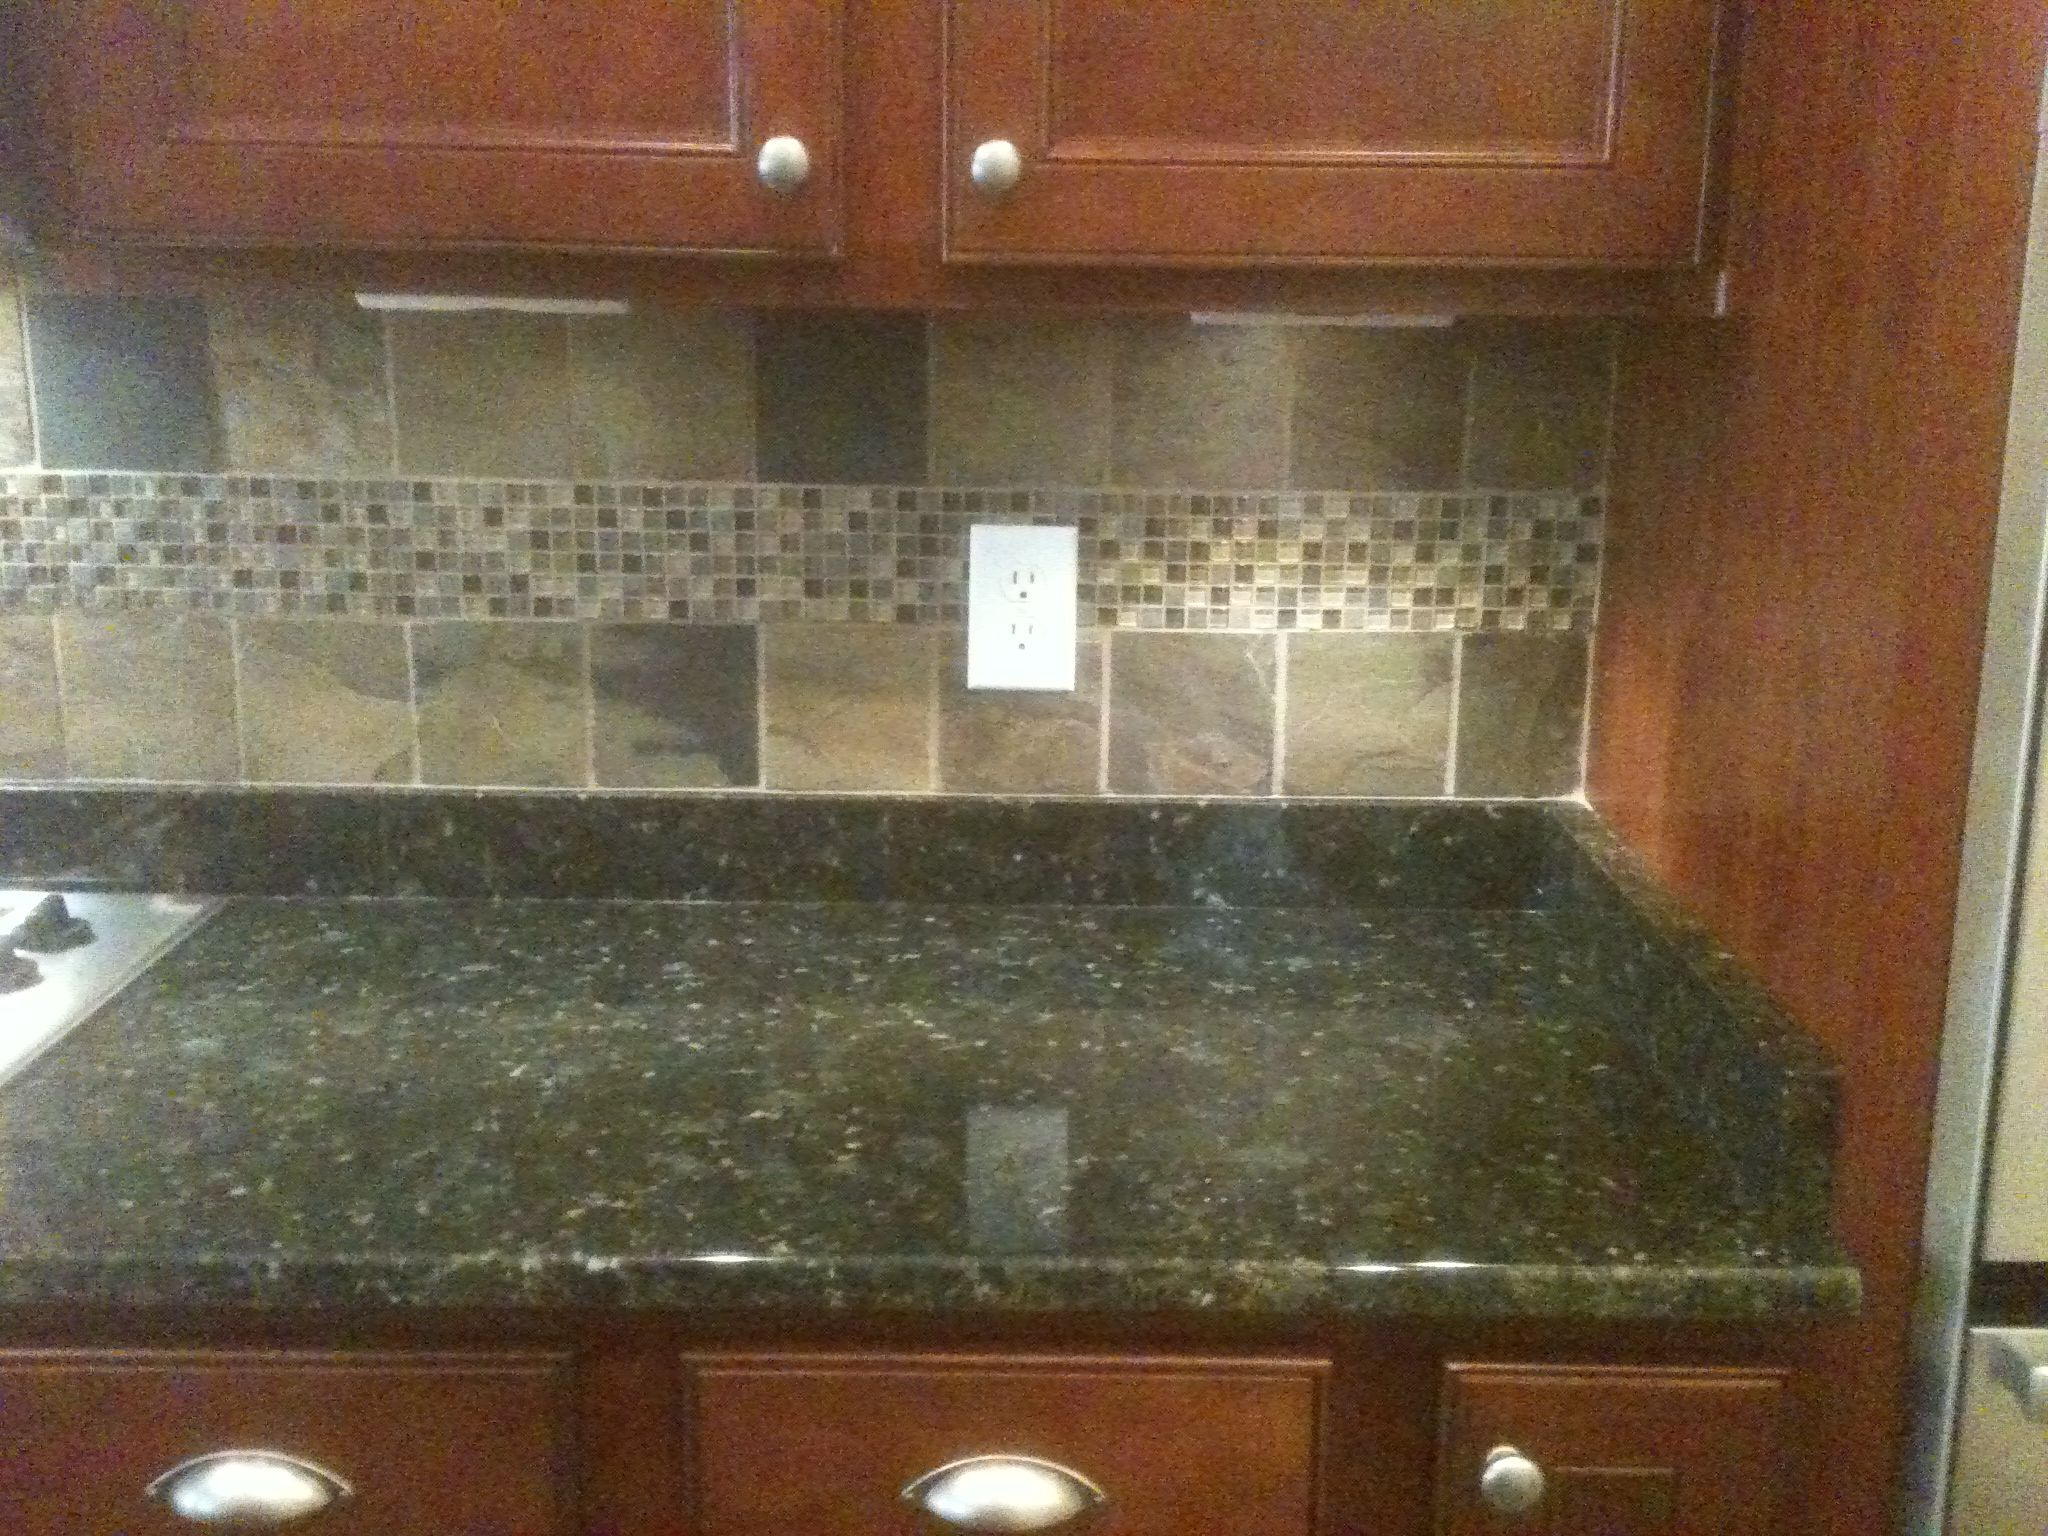 Butterfly Green Granite Countertops Pictures The Verde Butterfly Granite Counter Tops And The Original